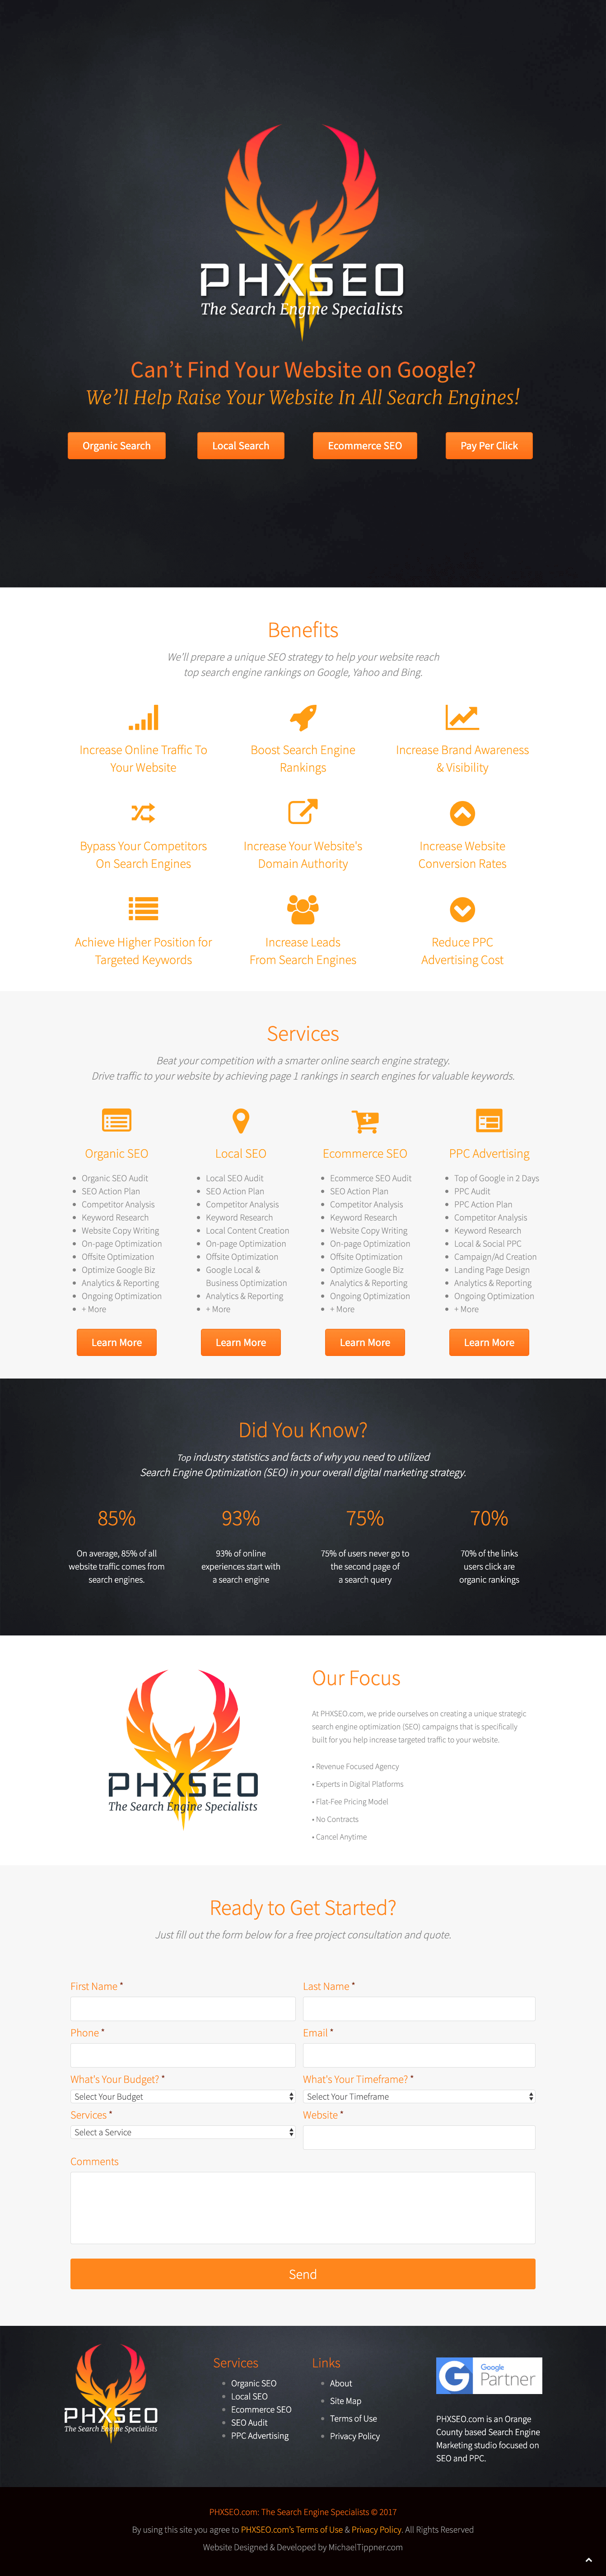 Phonenix-Search-Engine-Optimization-SEO-Website-Design-Home=Page